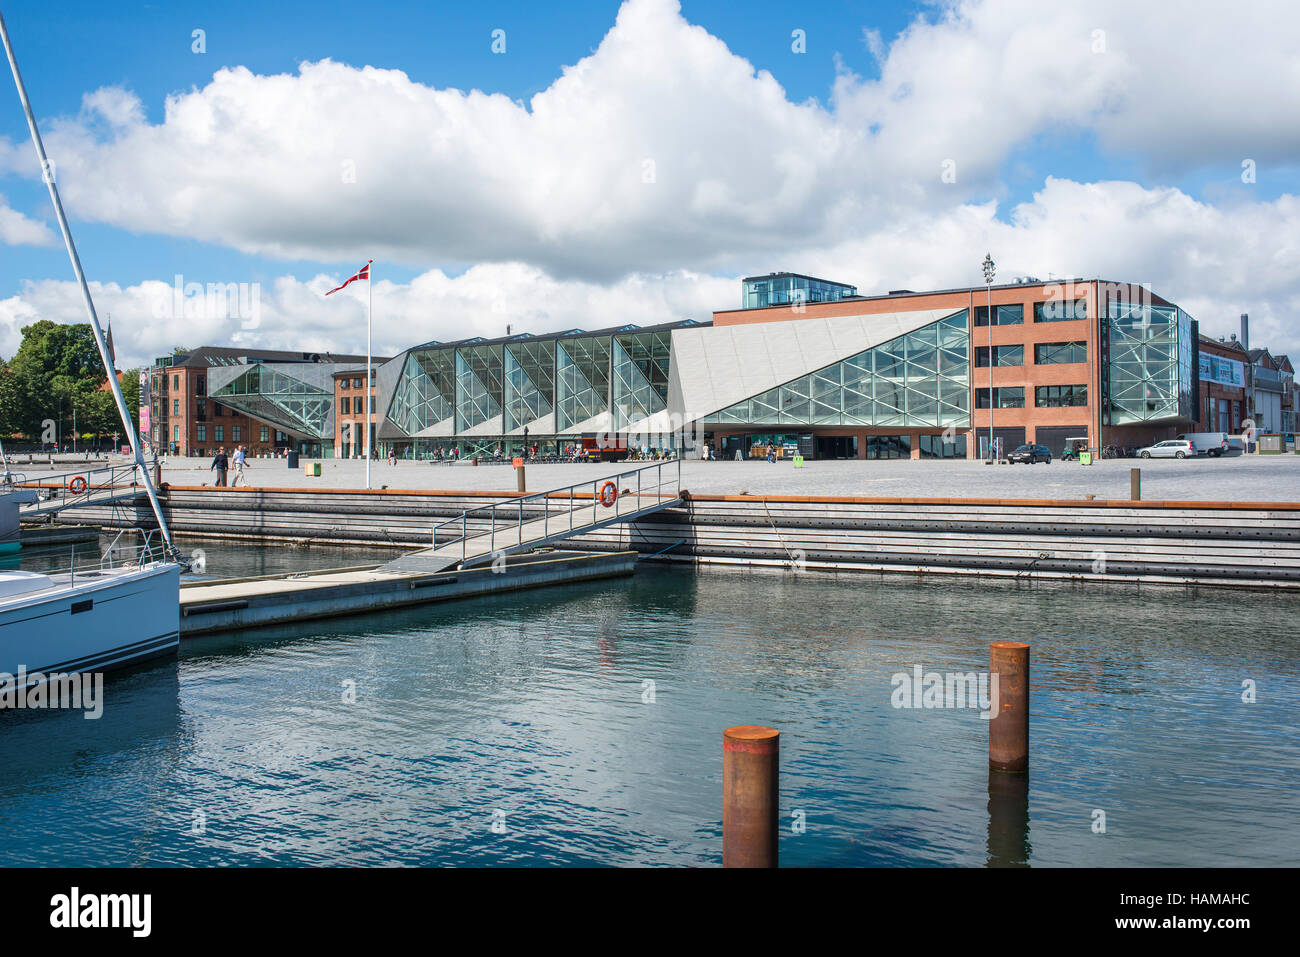 The Culture Yard, a modern cultural center with library, designed by AART architects in Elsinore, Hovedstaden Region, - Stock Image